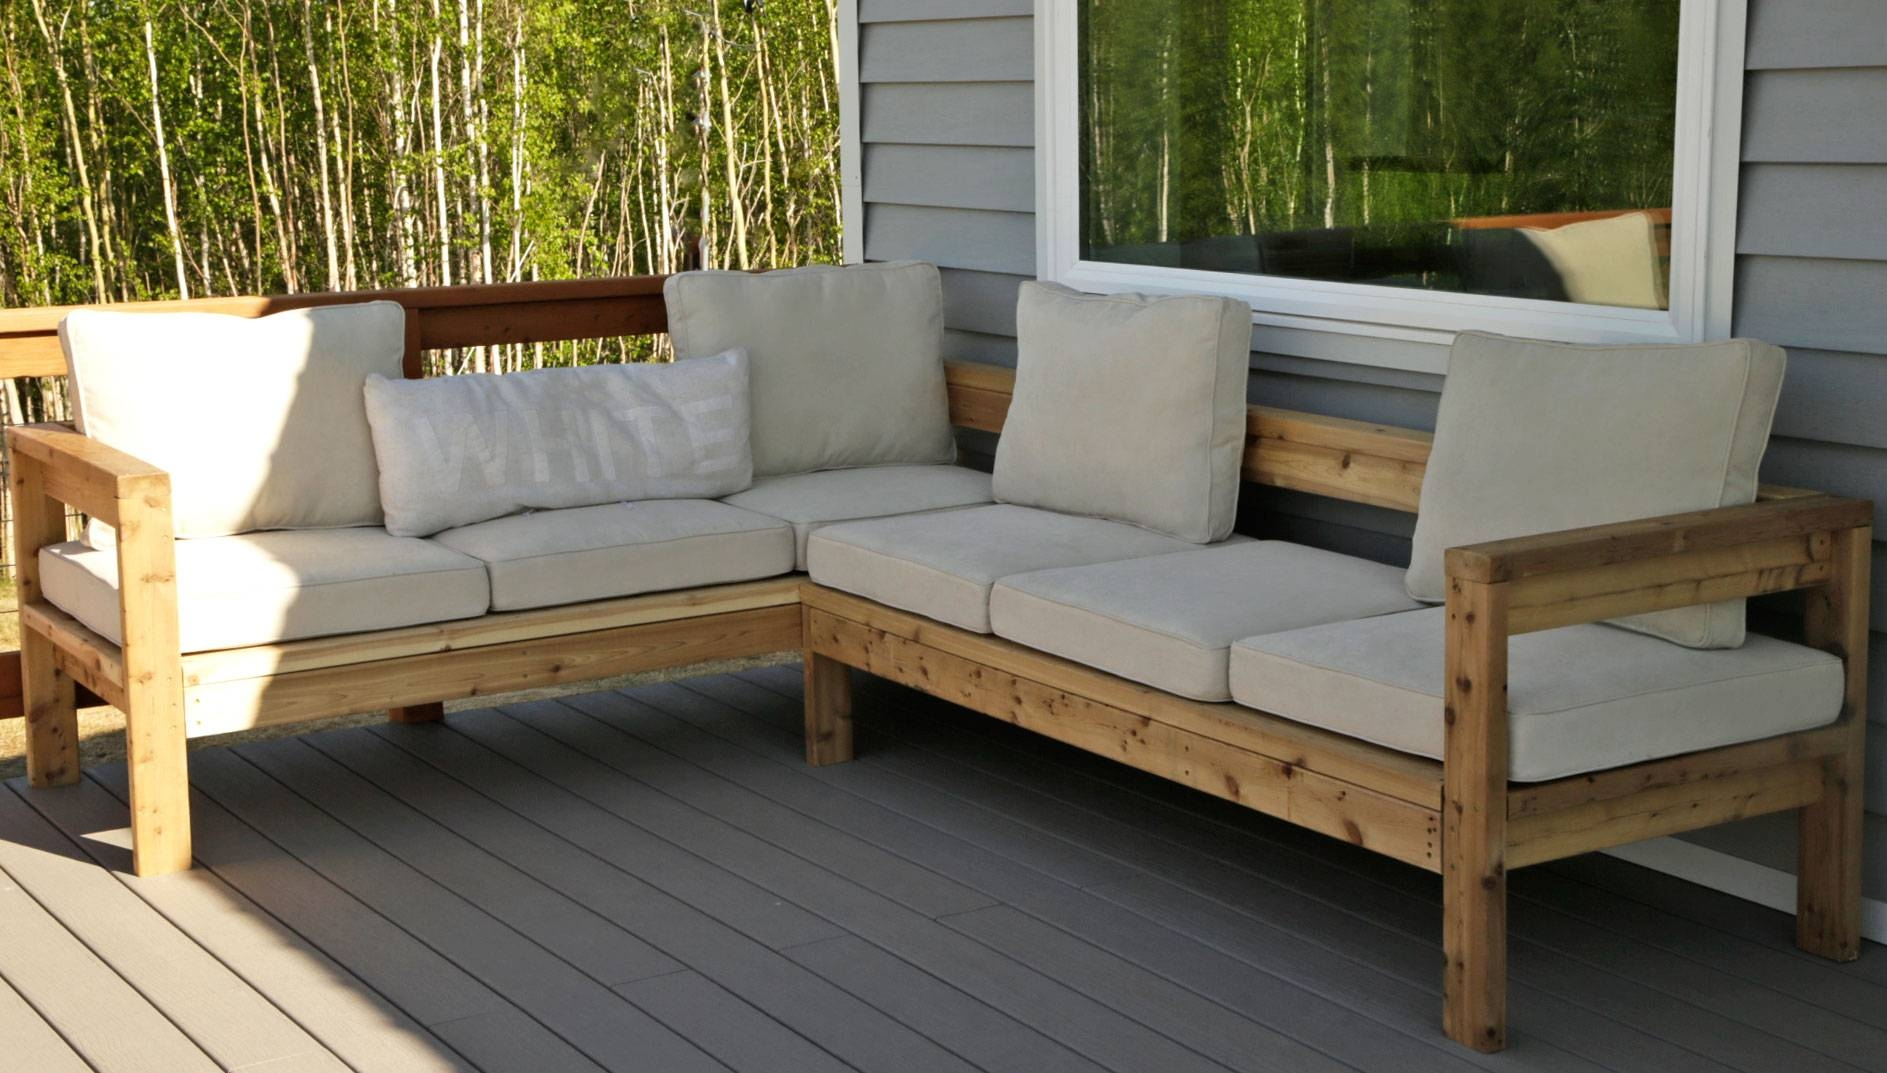 Ryobi Nation regarding Ana White Outdoor Sectional Sofas (Image 15 of 15)